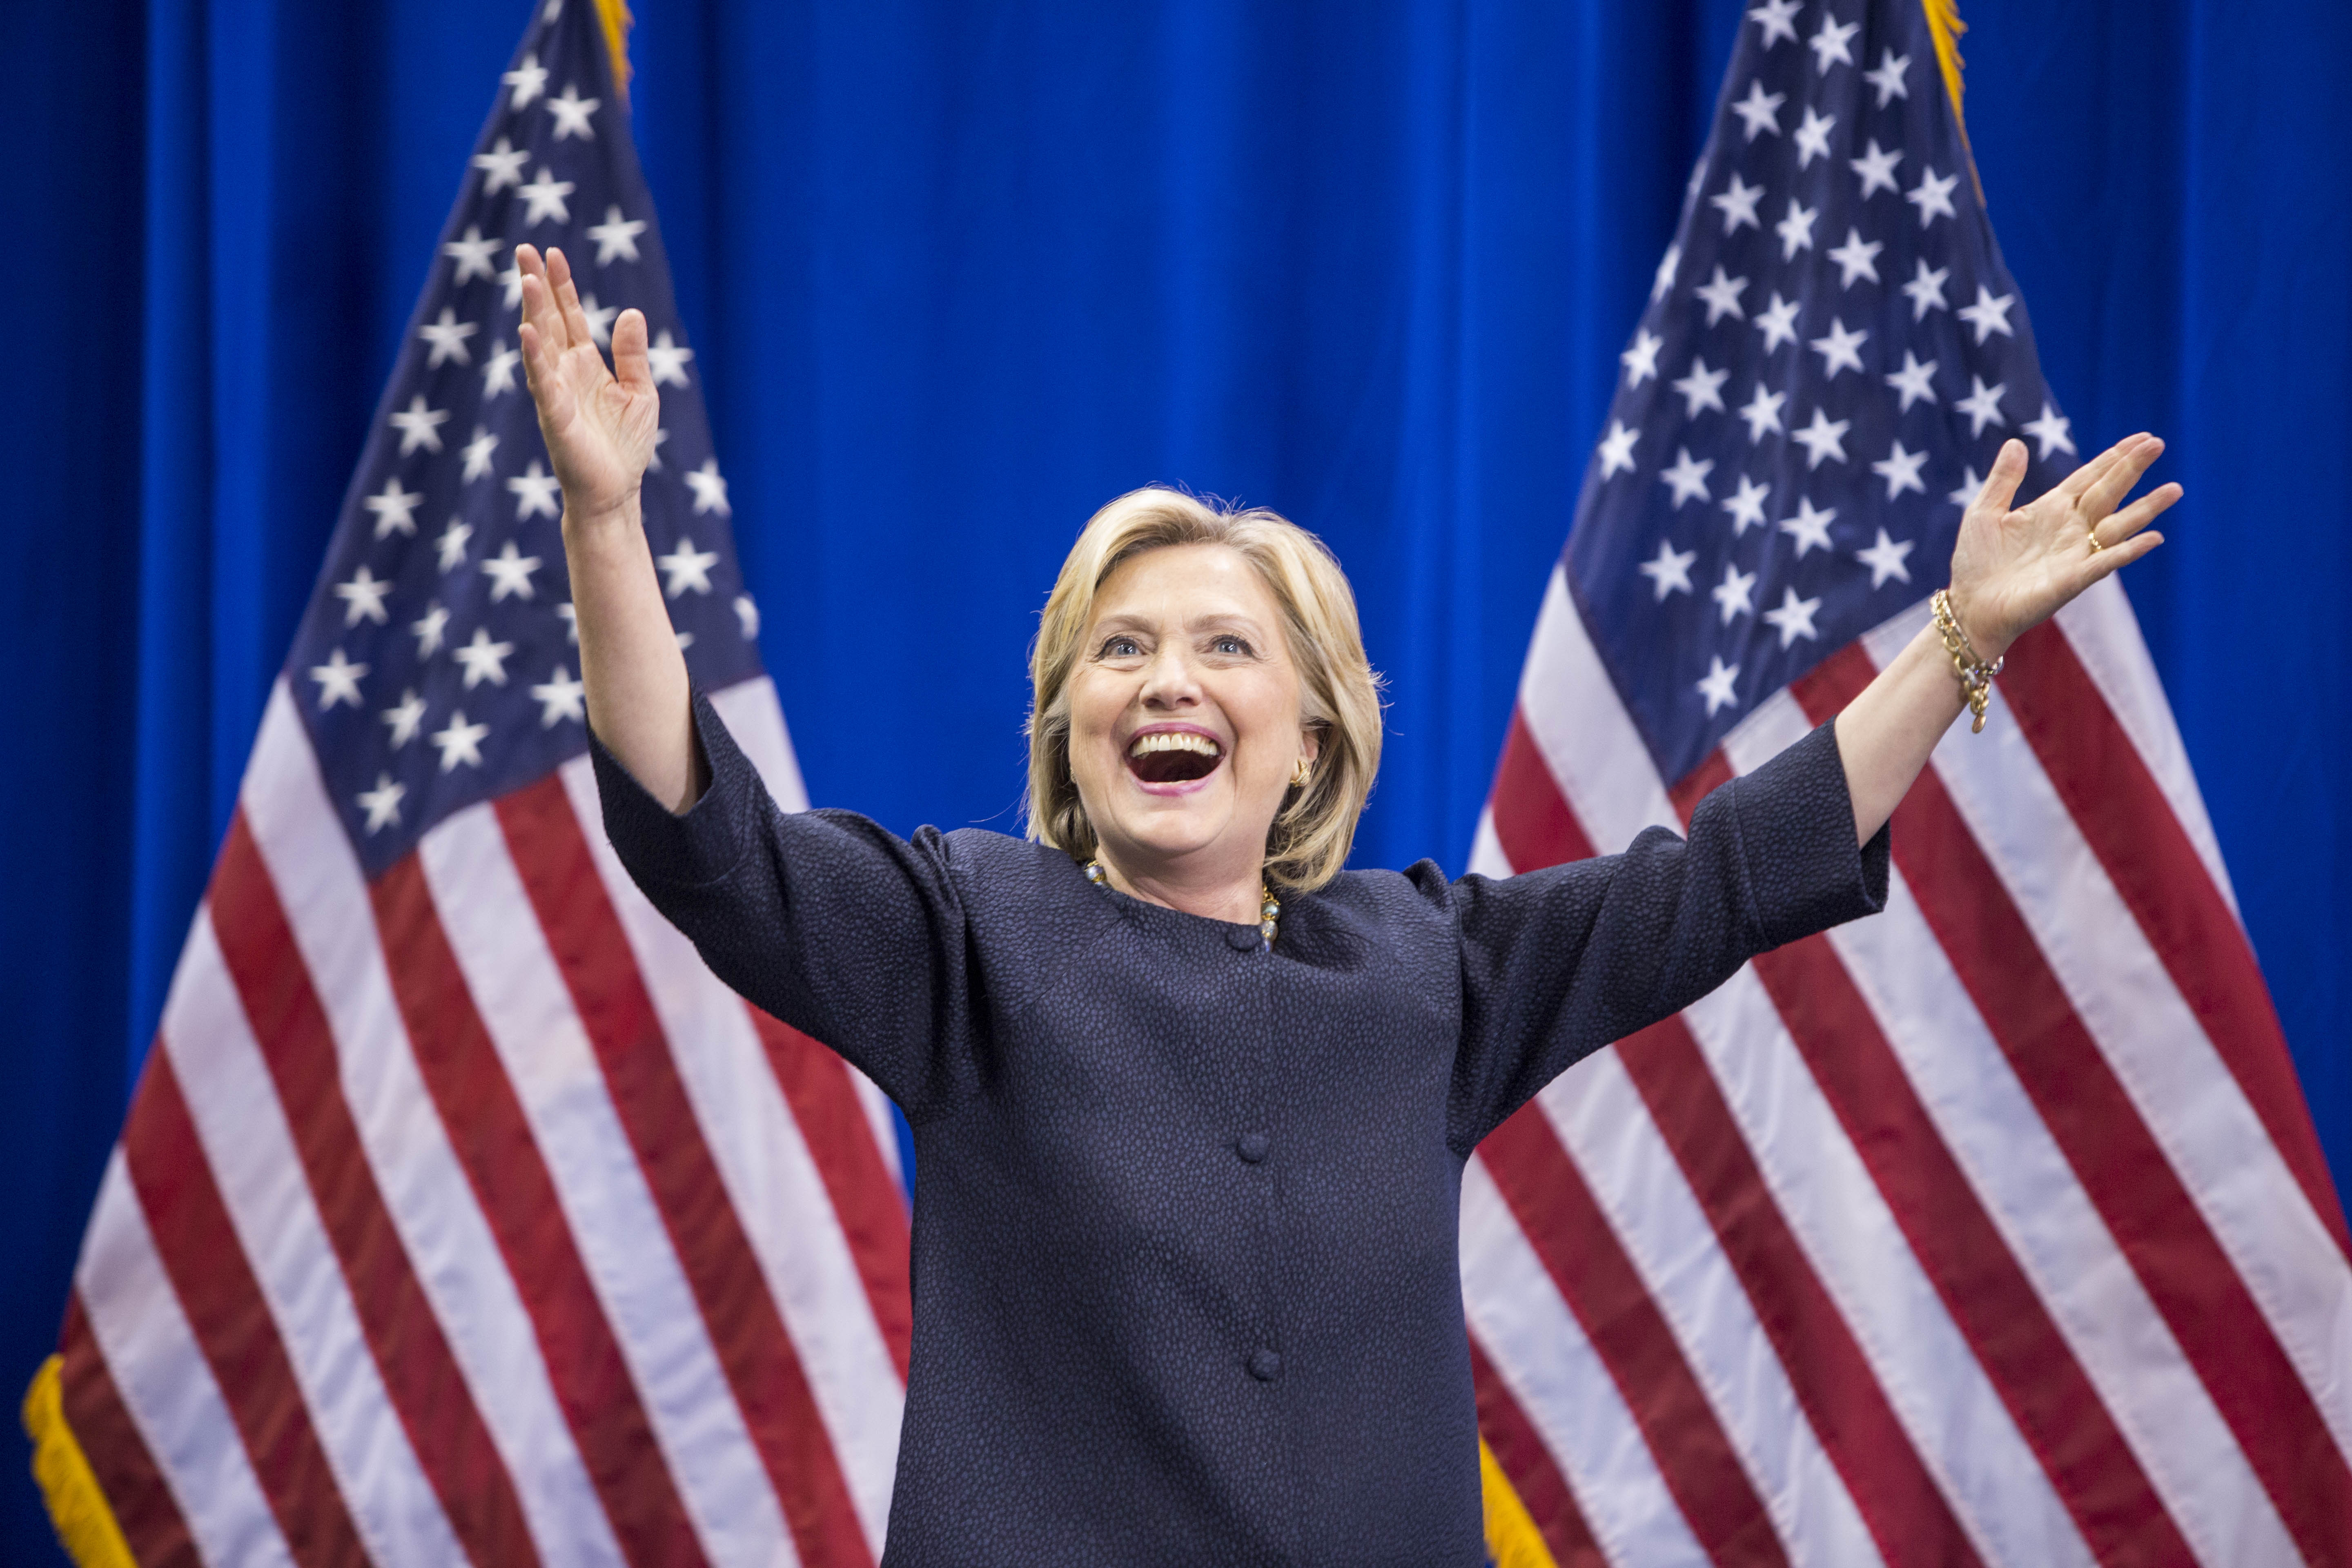 Democratic presidential candidate Hillary Clinton raises her arms stands on stage during the New Hampshire Democratic Party Convention at the Verizon Wireless Center on Sept. 19, 2015 in Manchester, New Hampshire.